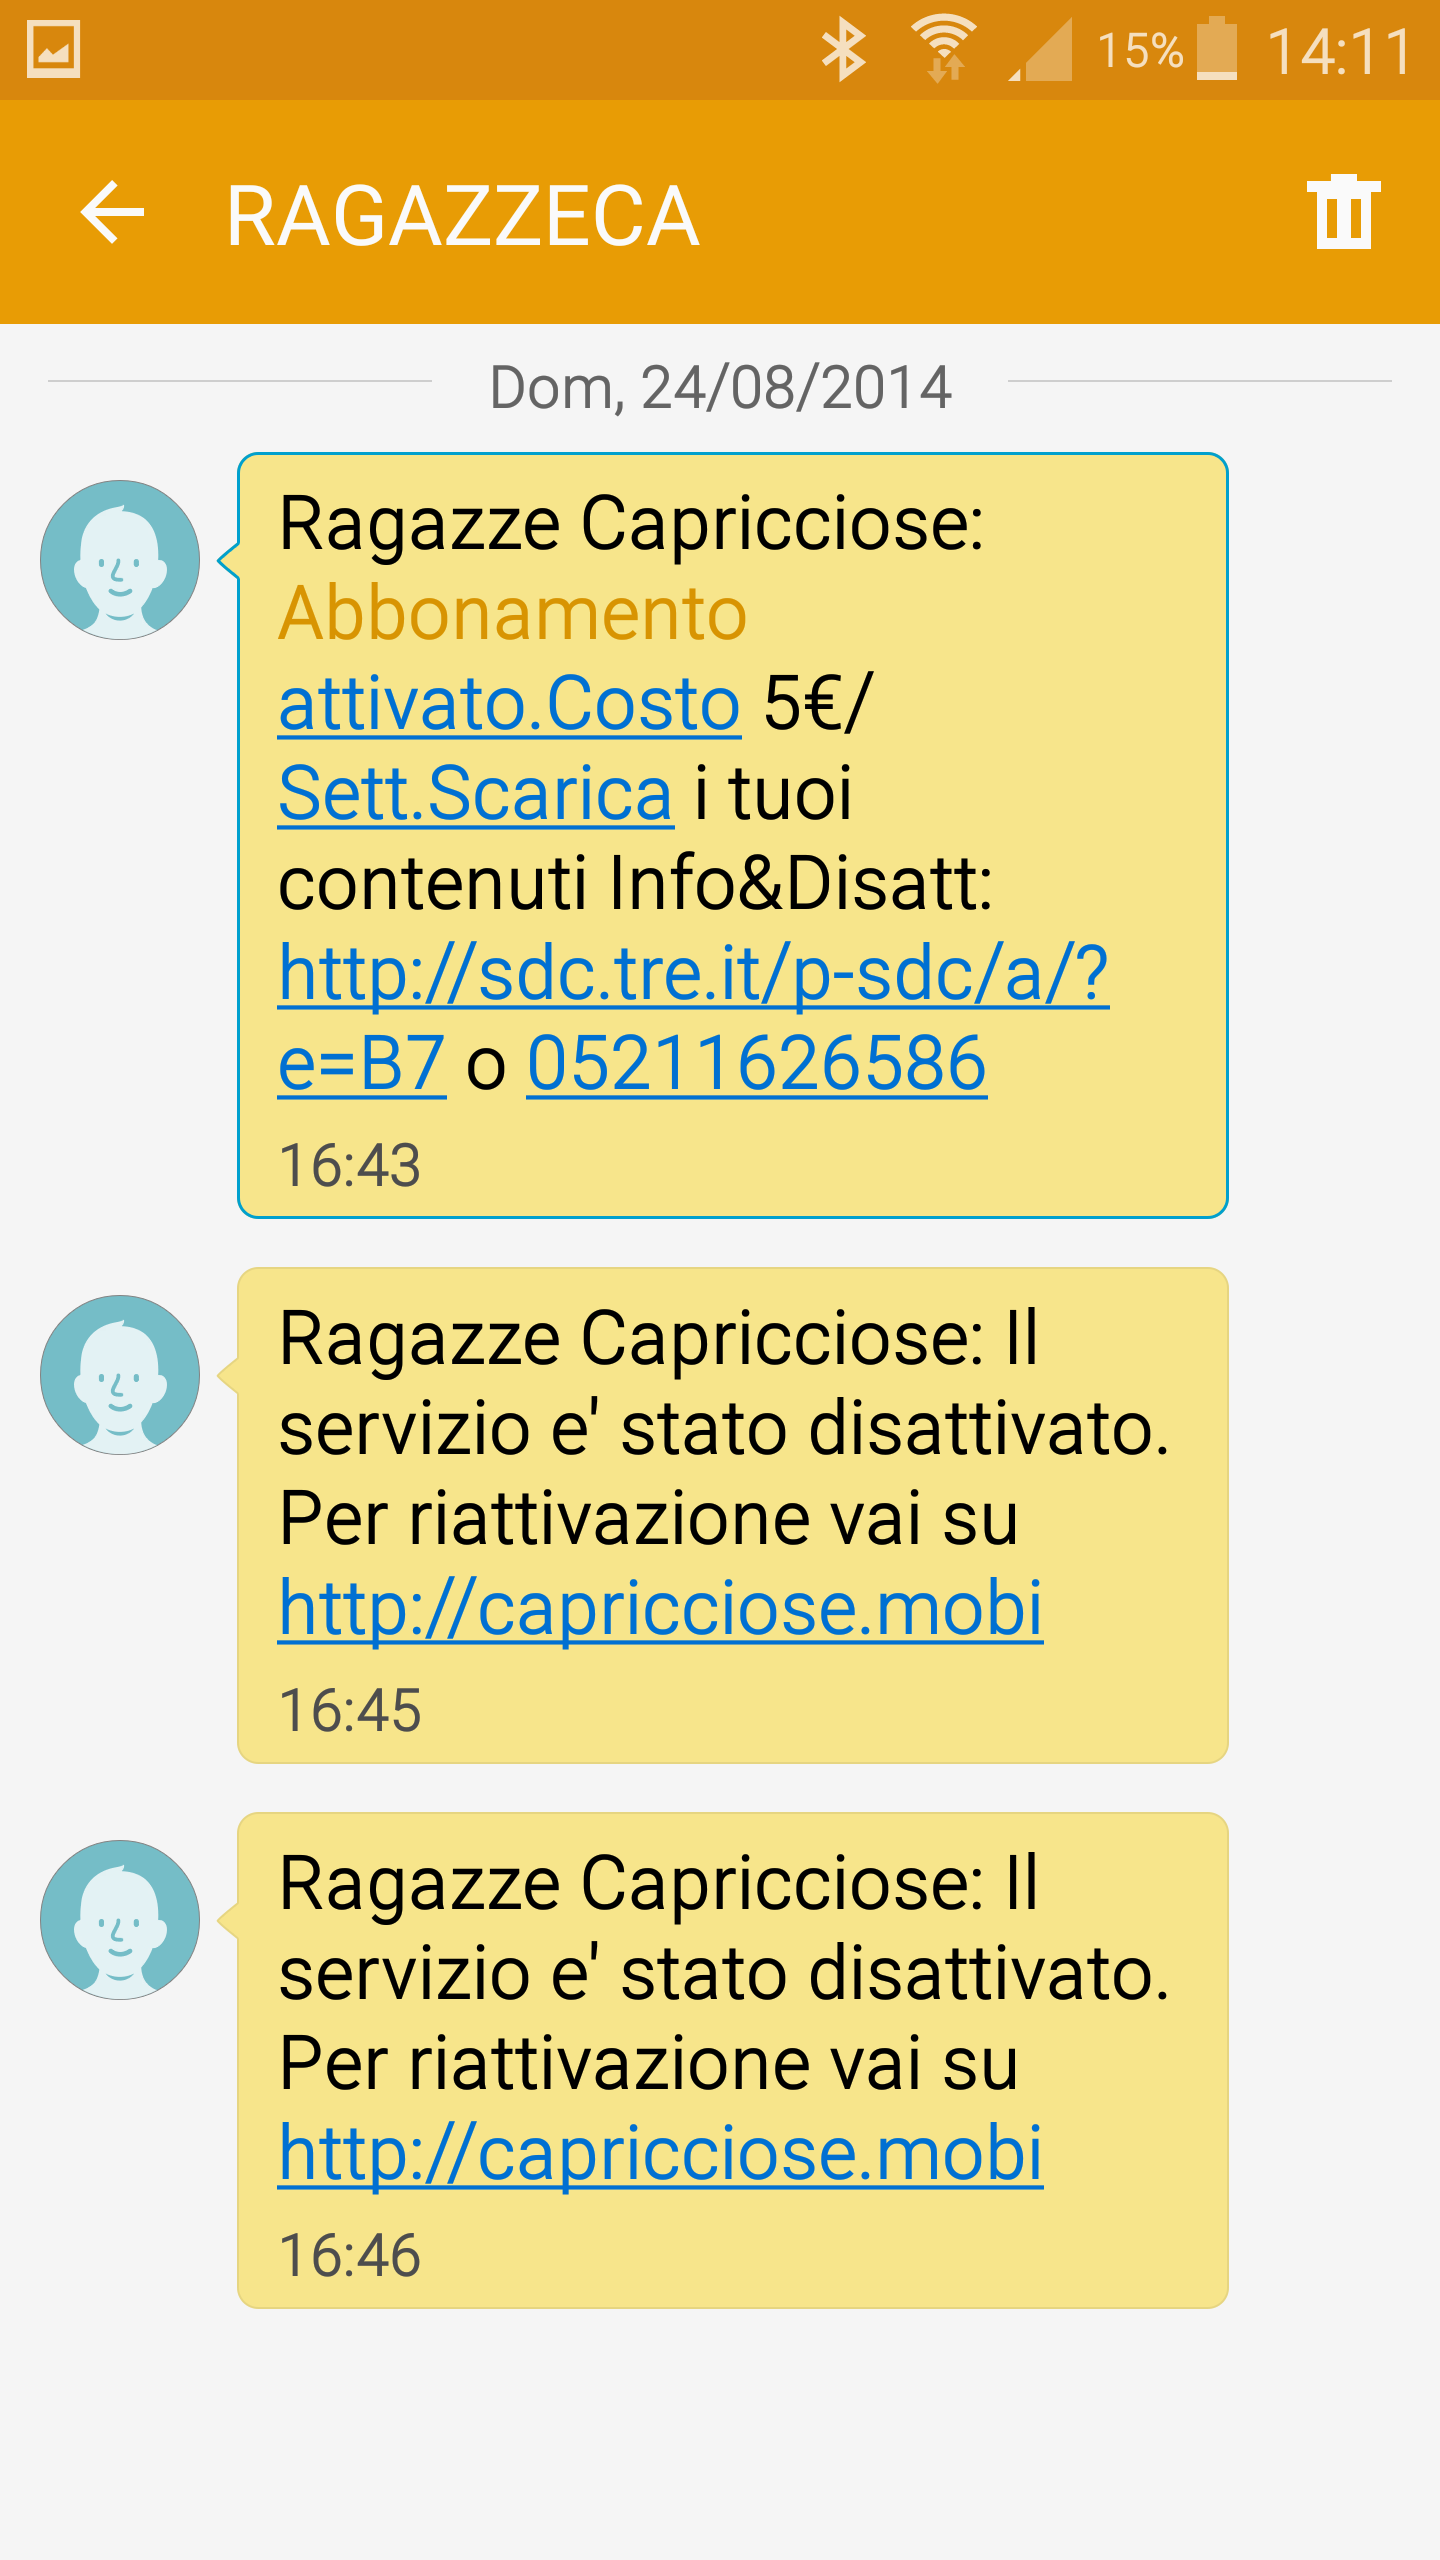 Ragazze Capricciose, h3g three Italy unrequested subscription, 24/08/2014